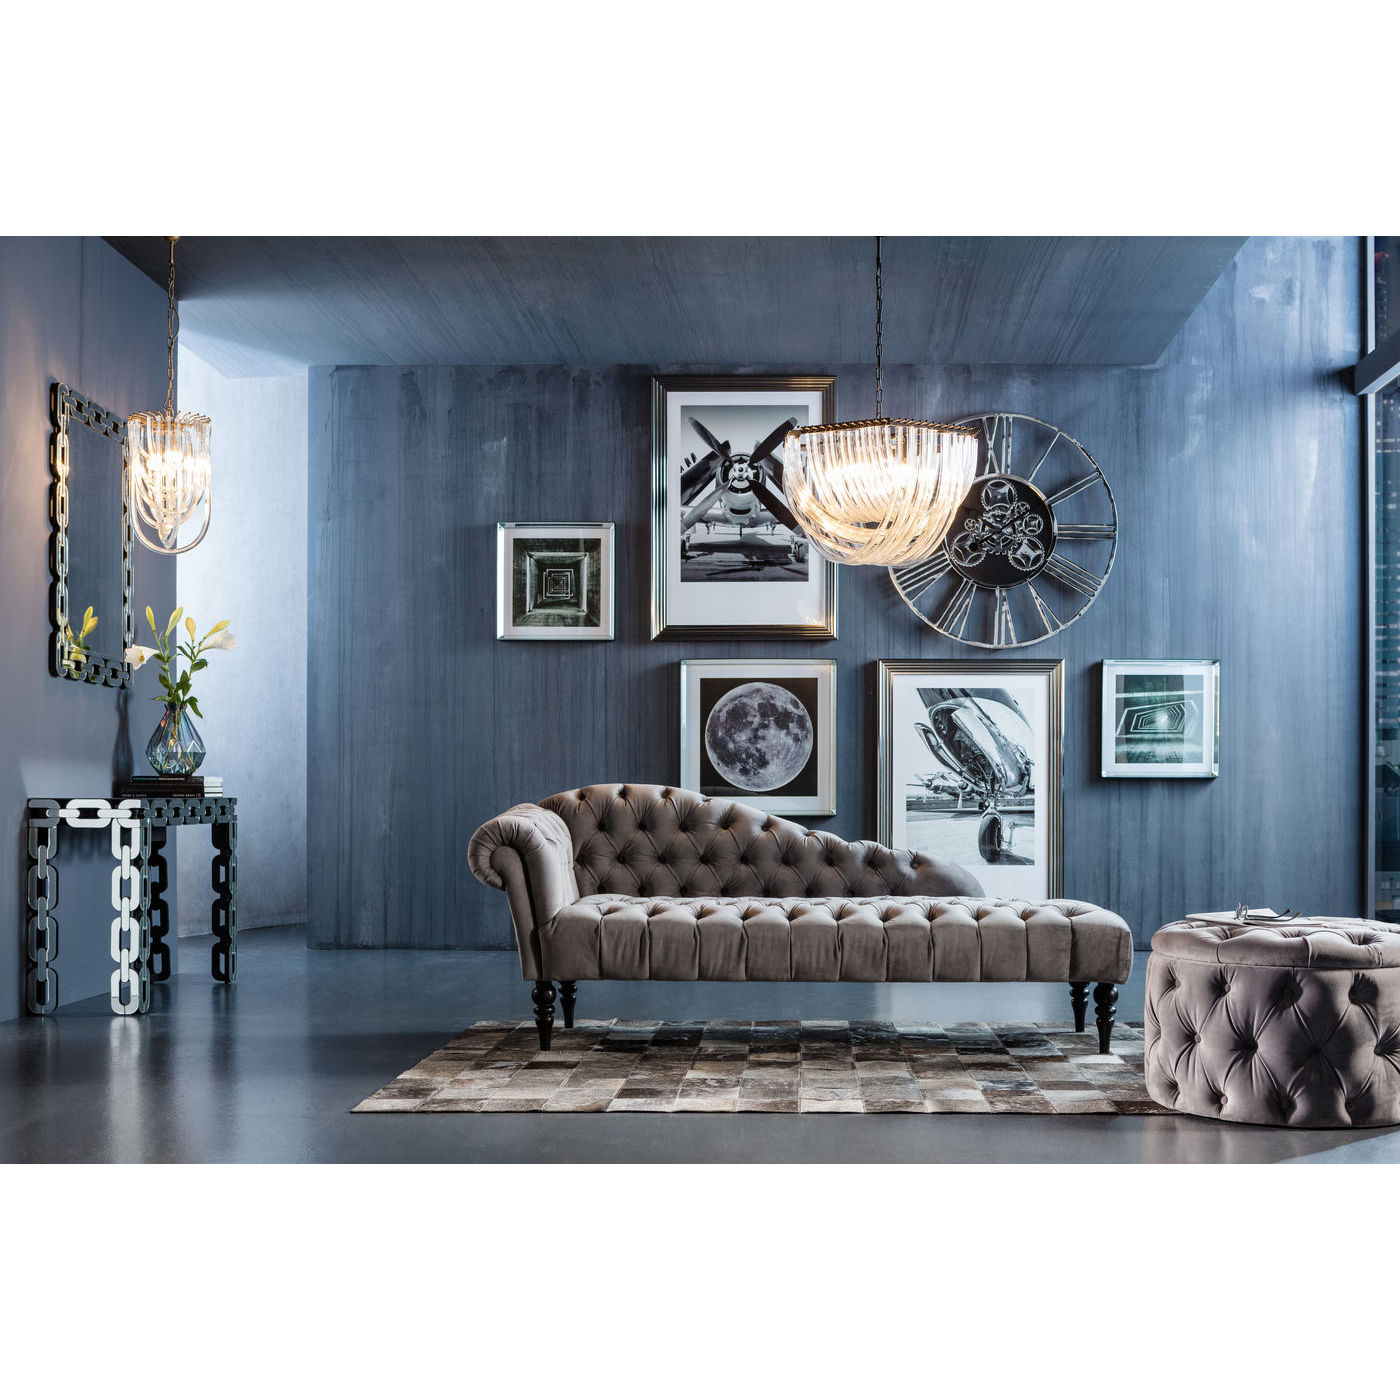 desire skammel med knapper i harlekinm nster opbevaring. Black Bedroom Furniture Sets. Home Design Ideas